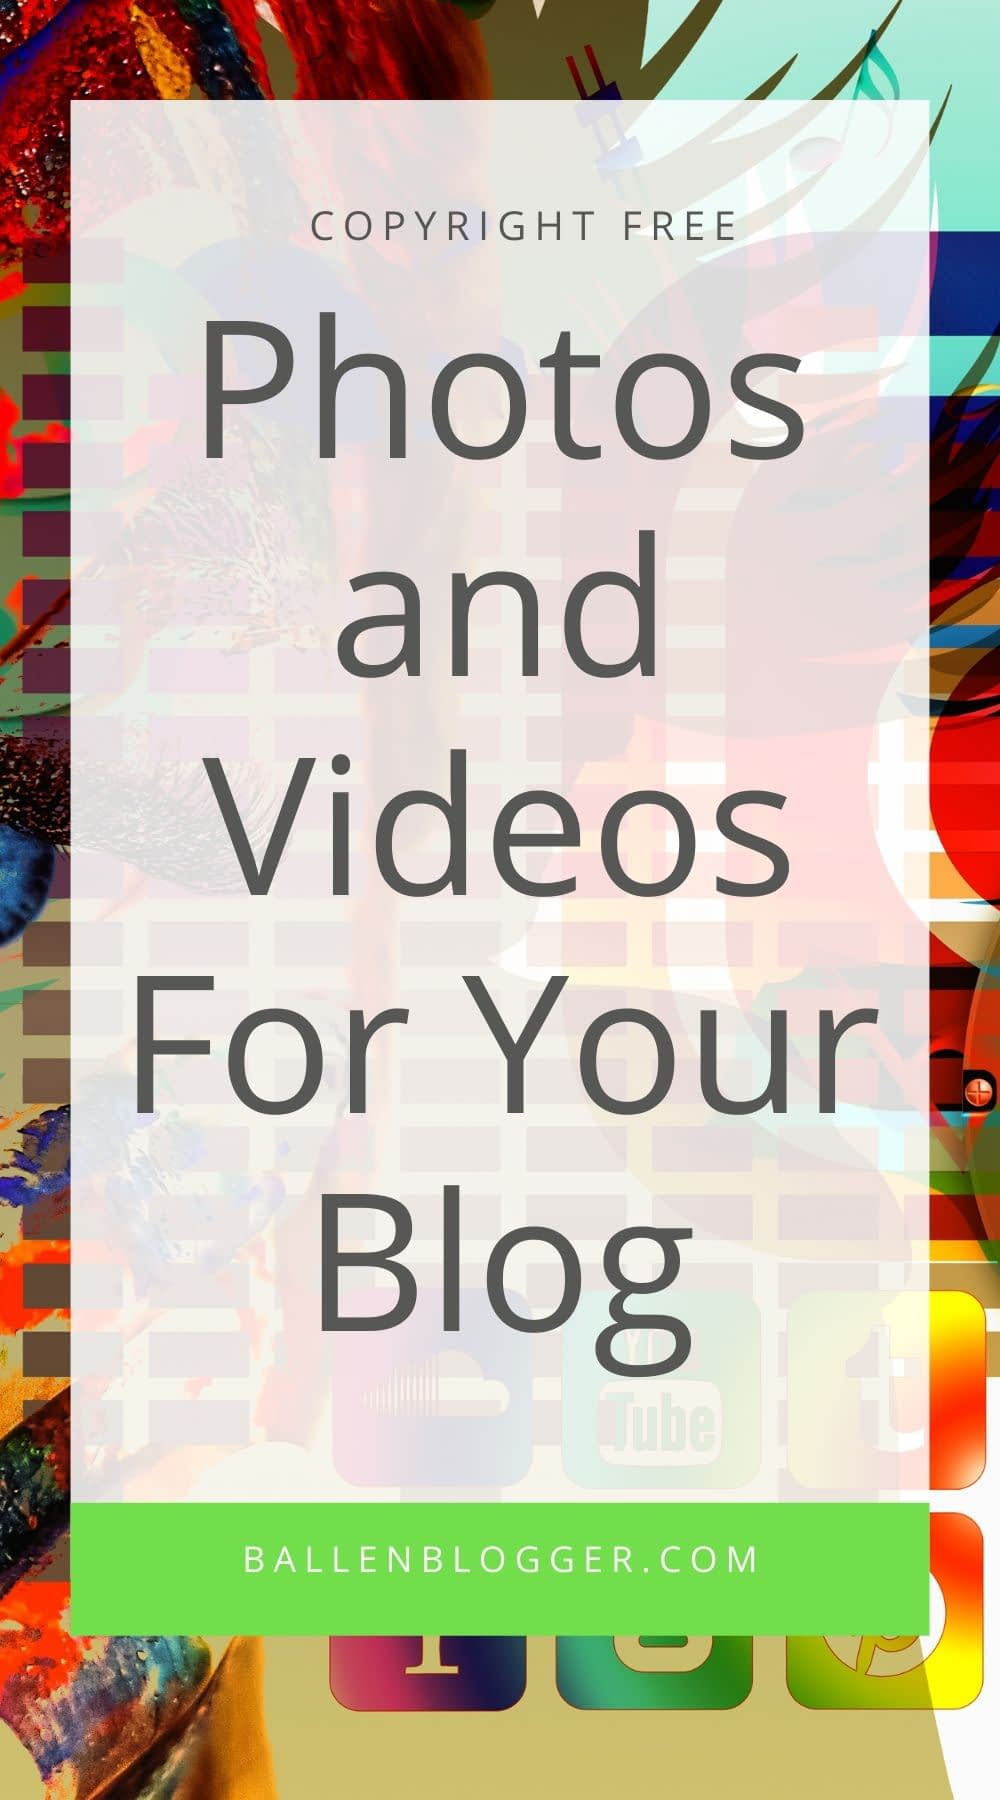 DepositPhotos offers copyright-free images and videos as a one-time on-demand purchase and as recurring subscriptions to use on your blog.